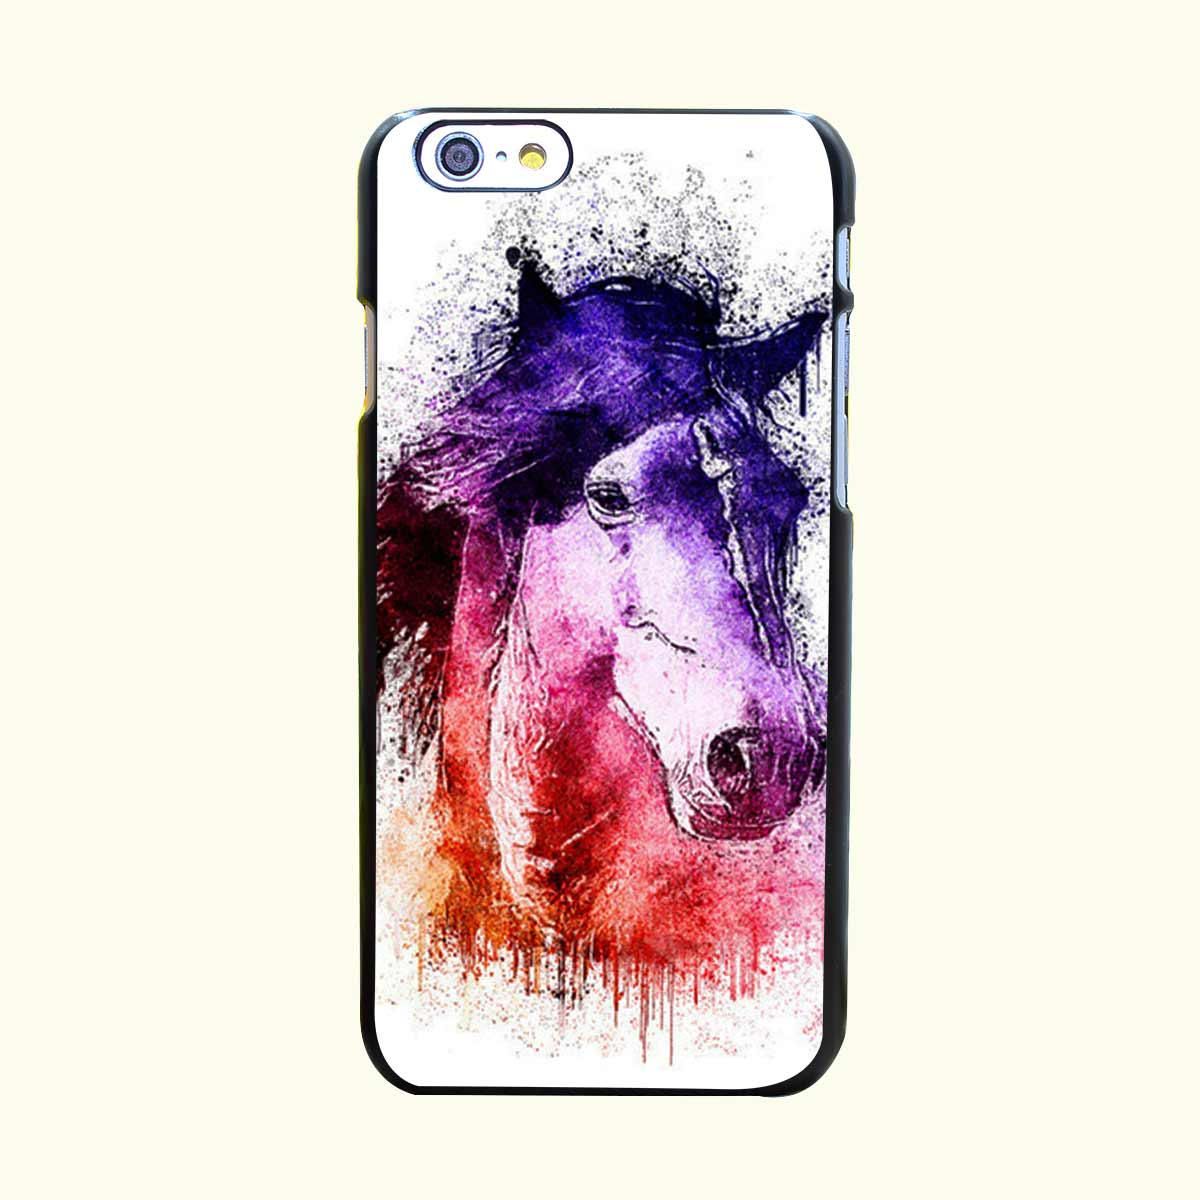 Watercolor Horse Hard Black Case Cover for iPhone 4 4s 5 5s 5c 6 6s Plus Print on Black Back